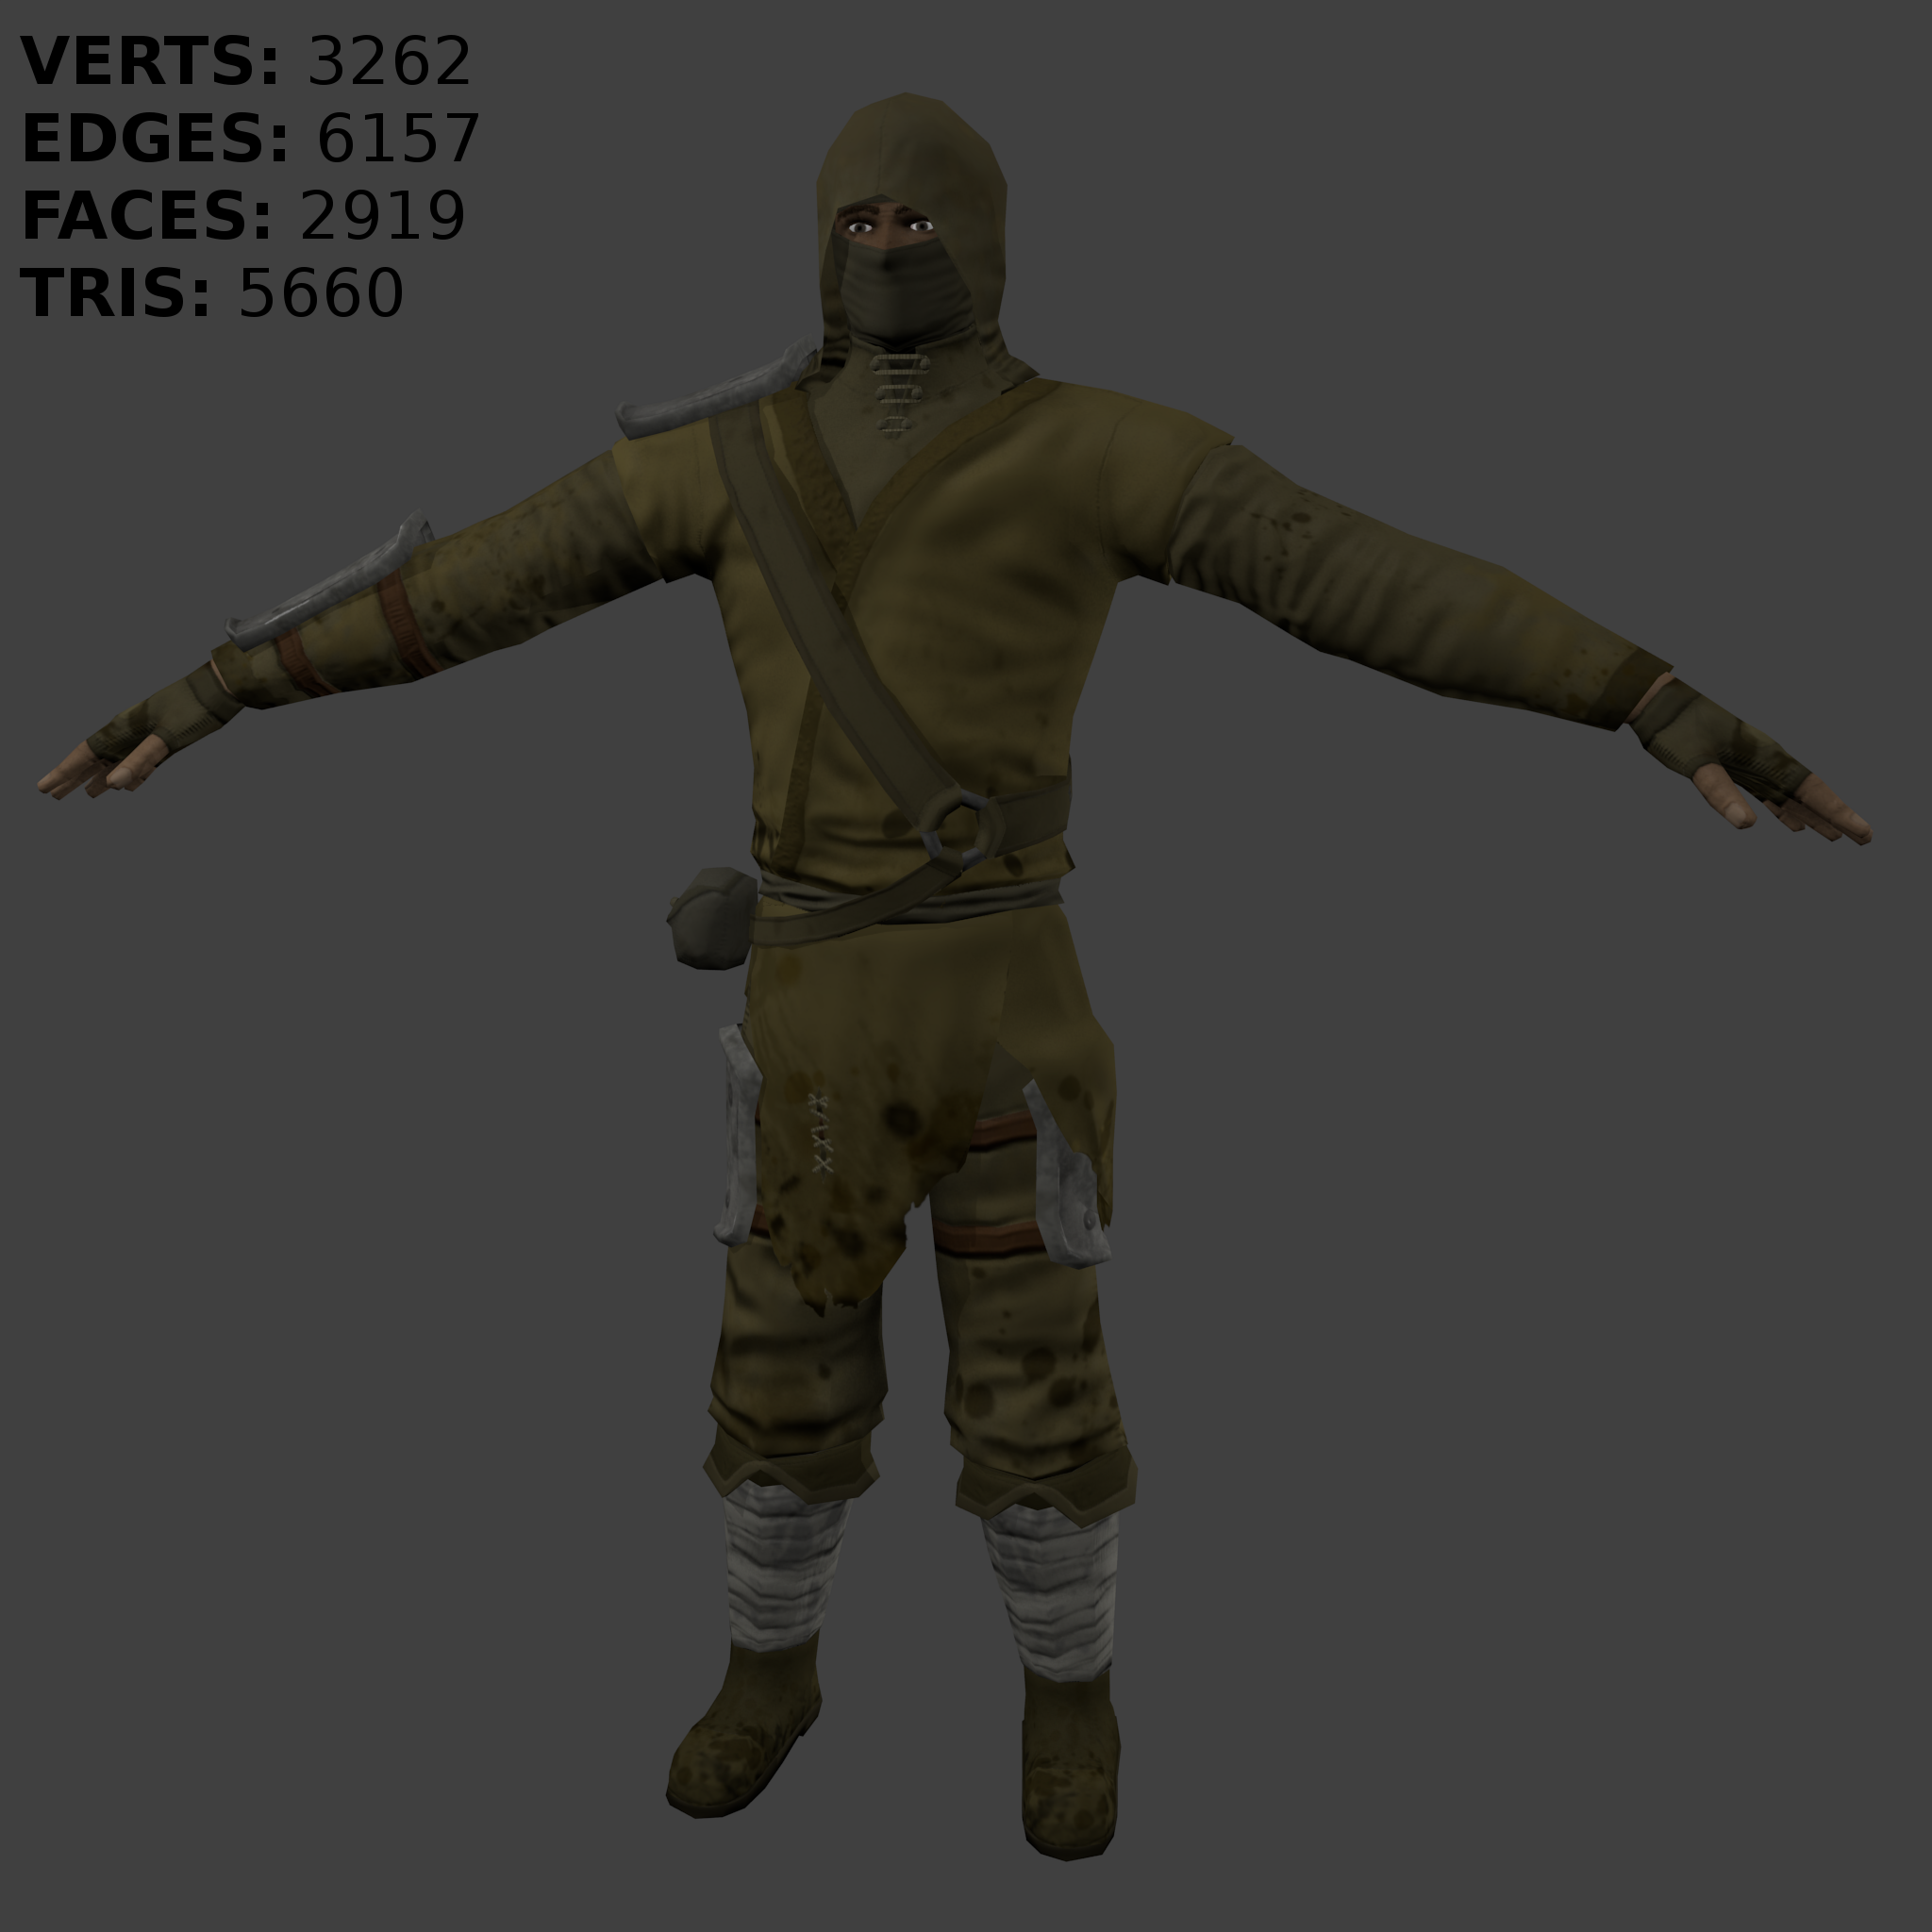 ninja_finished_3d_model__front__by_yilativ-d6onubp.png